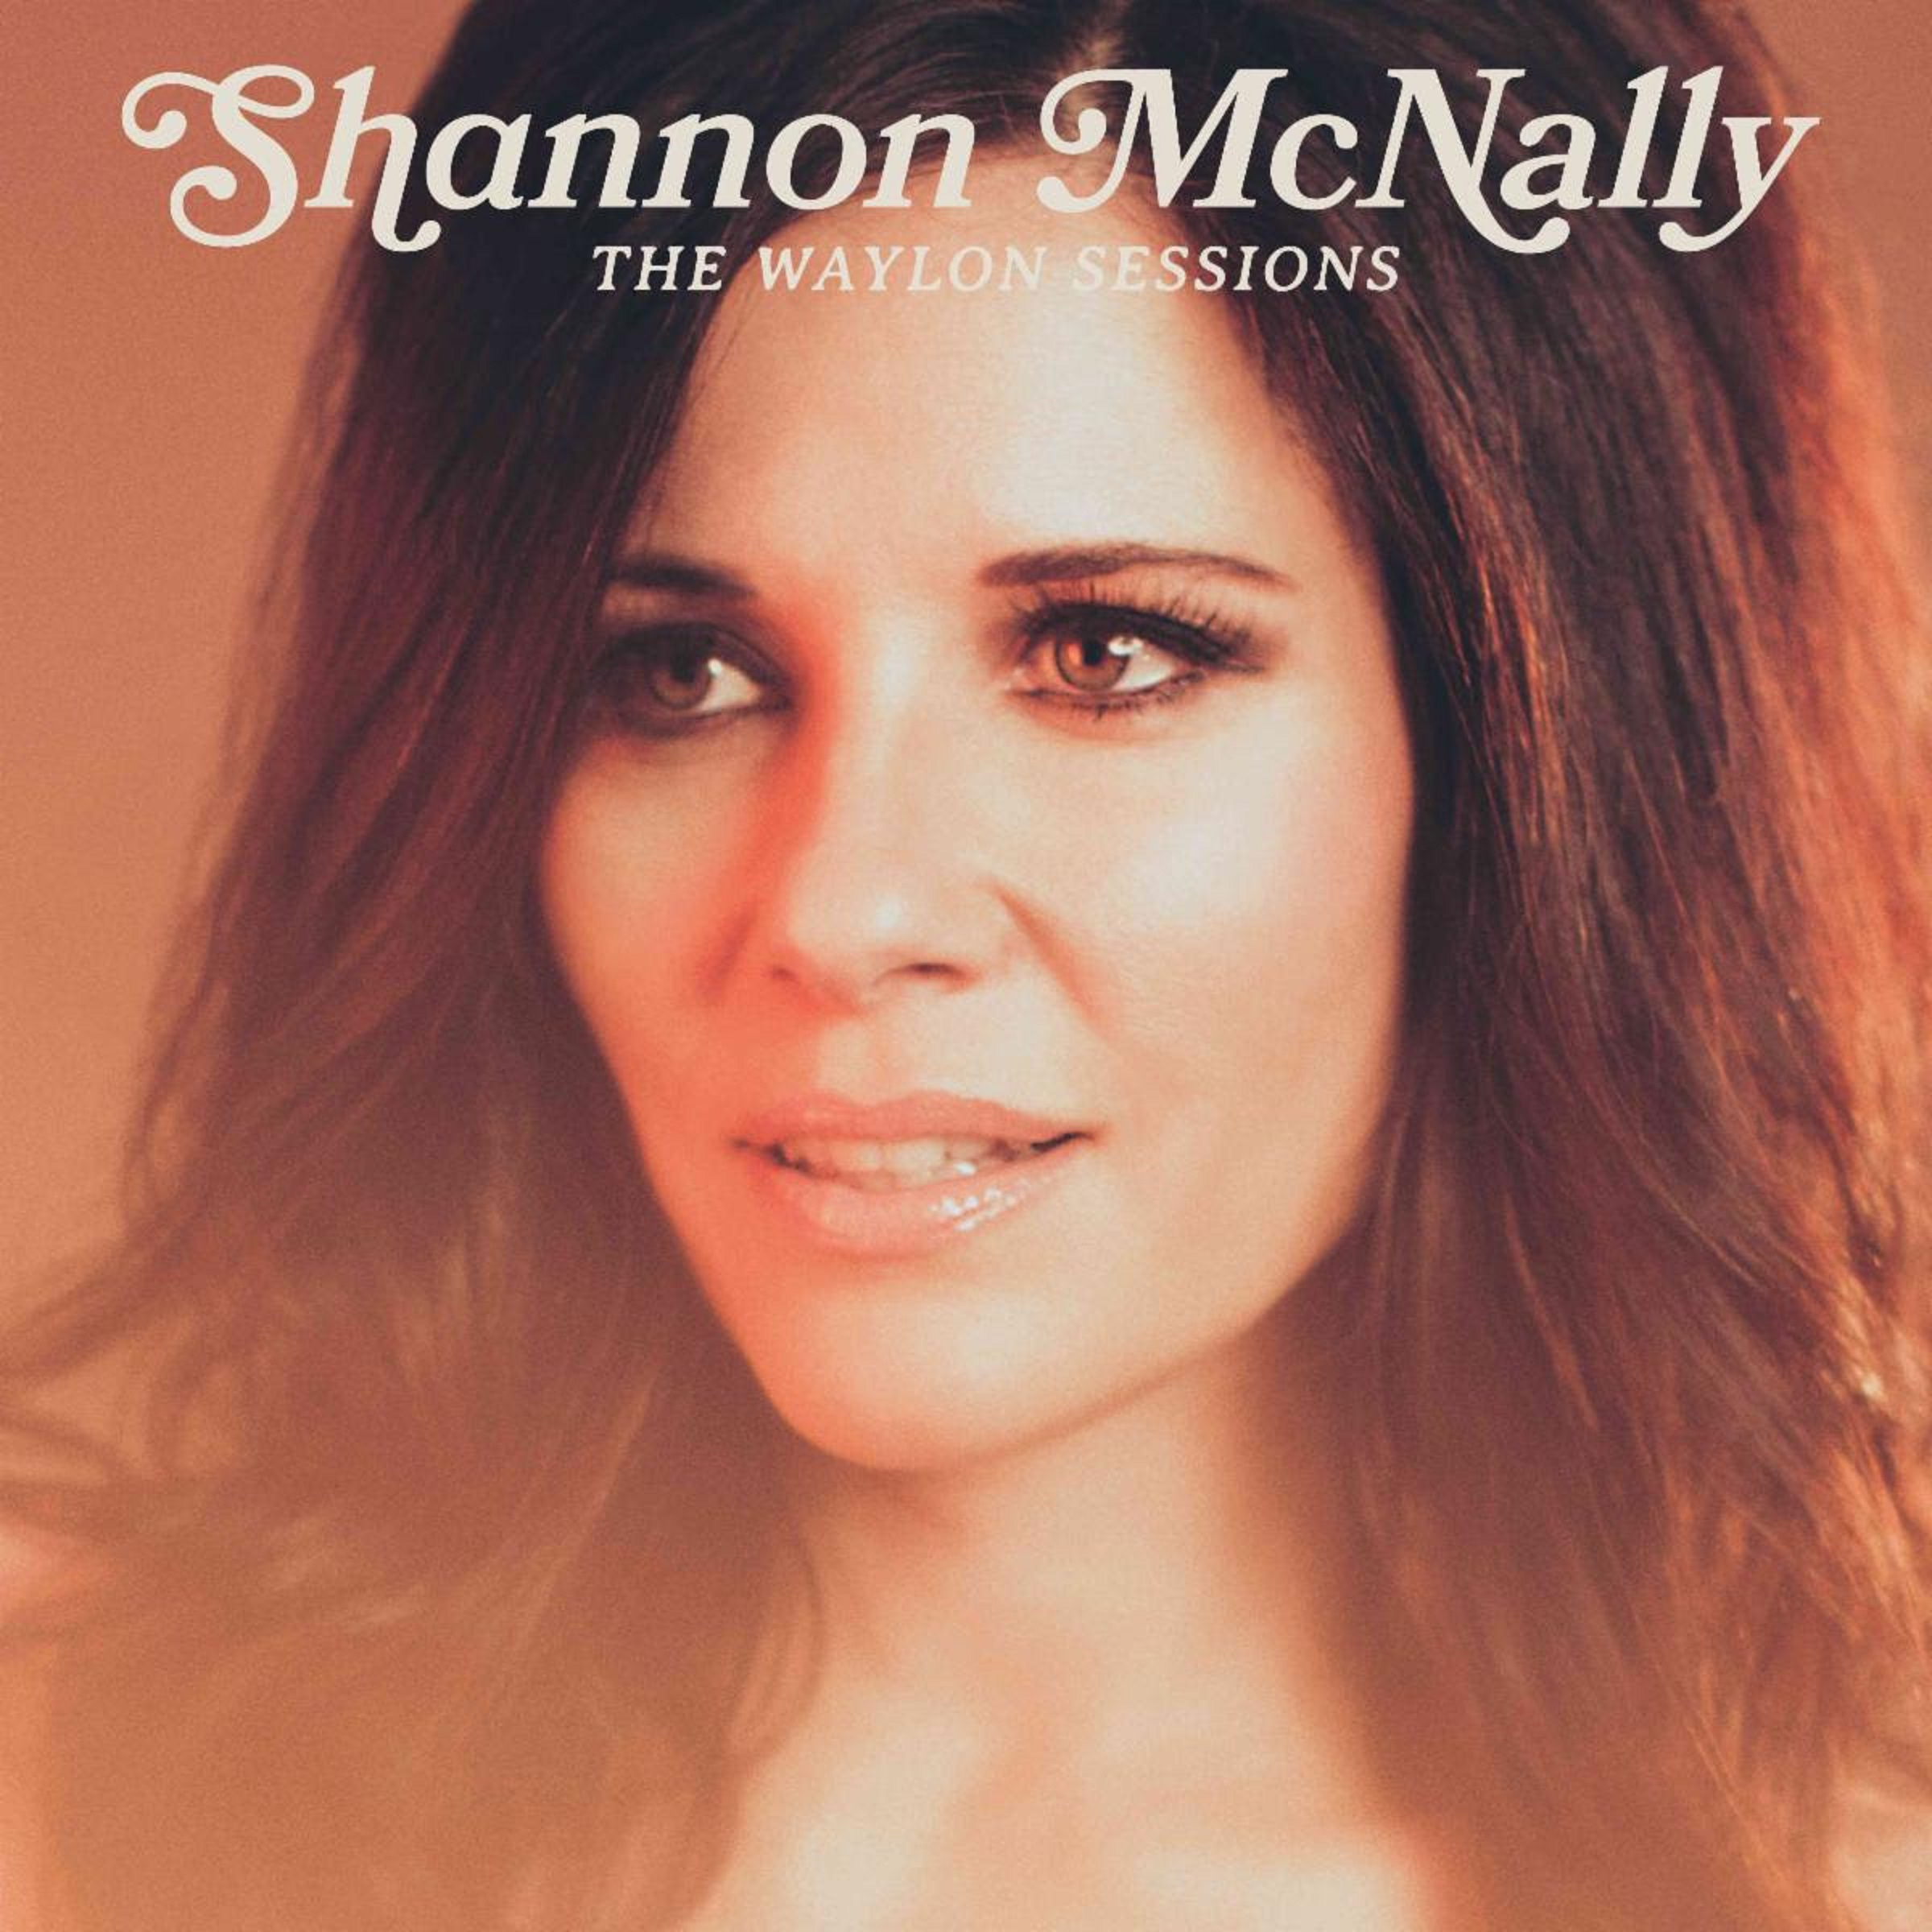 Shannon McNally Gives Classic Outlaw Songs A Fresh Voice With Her New Album The Waylon Sessions